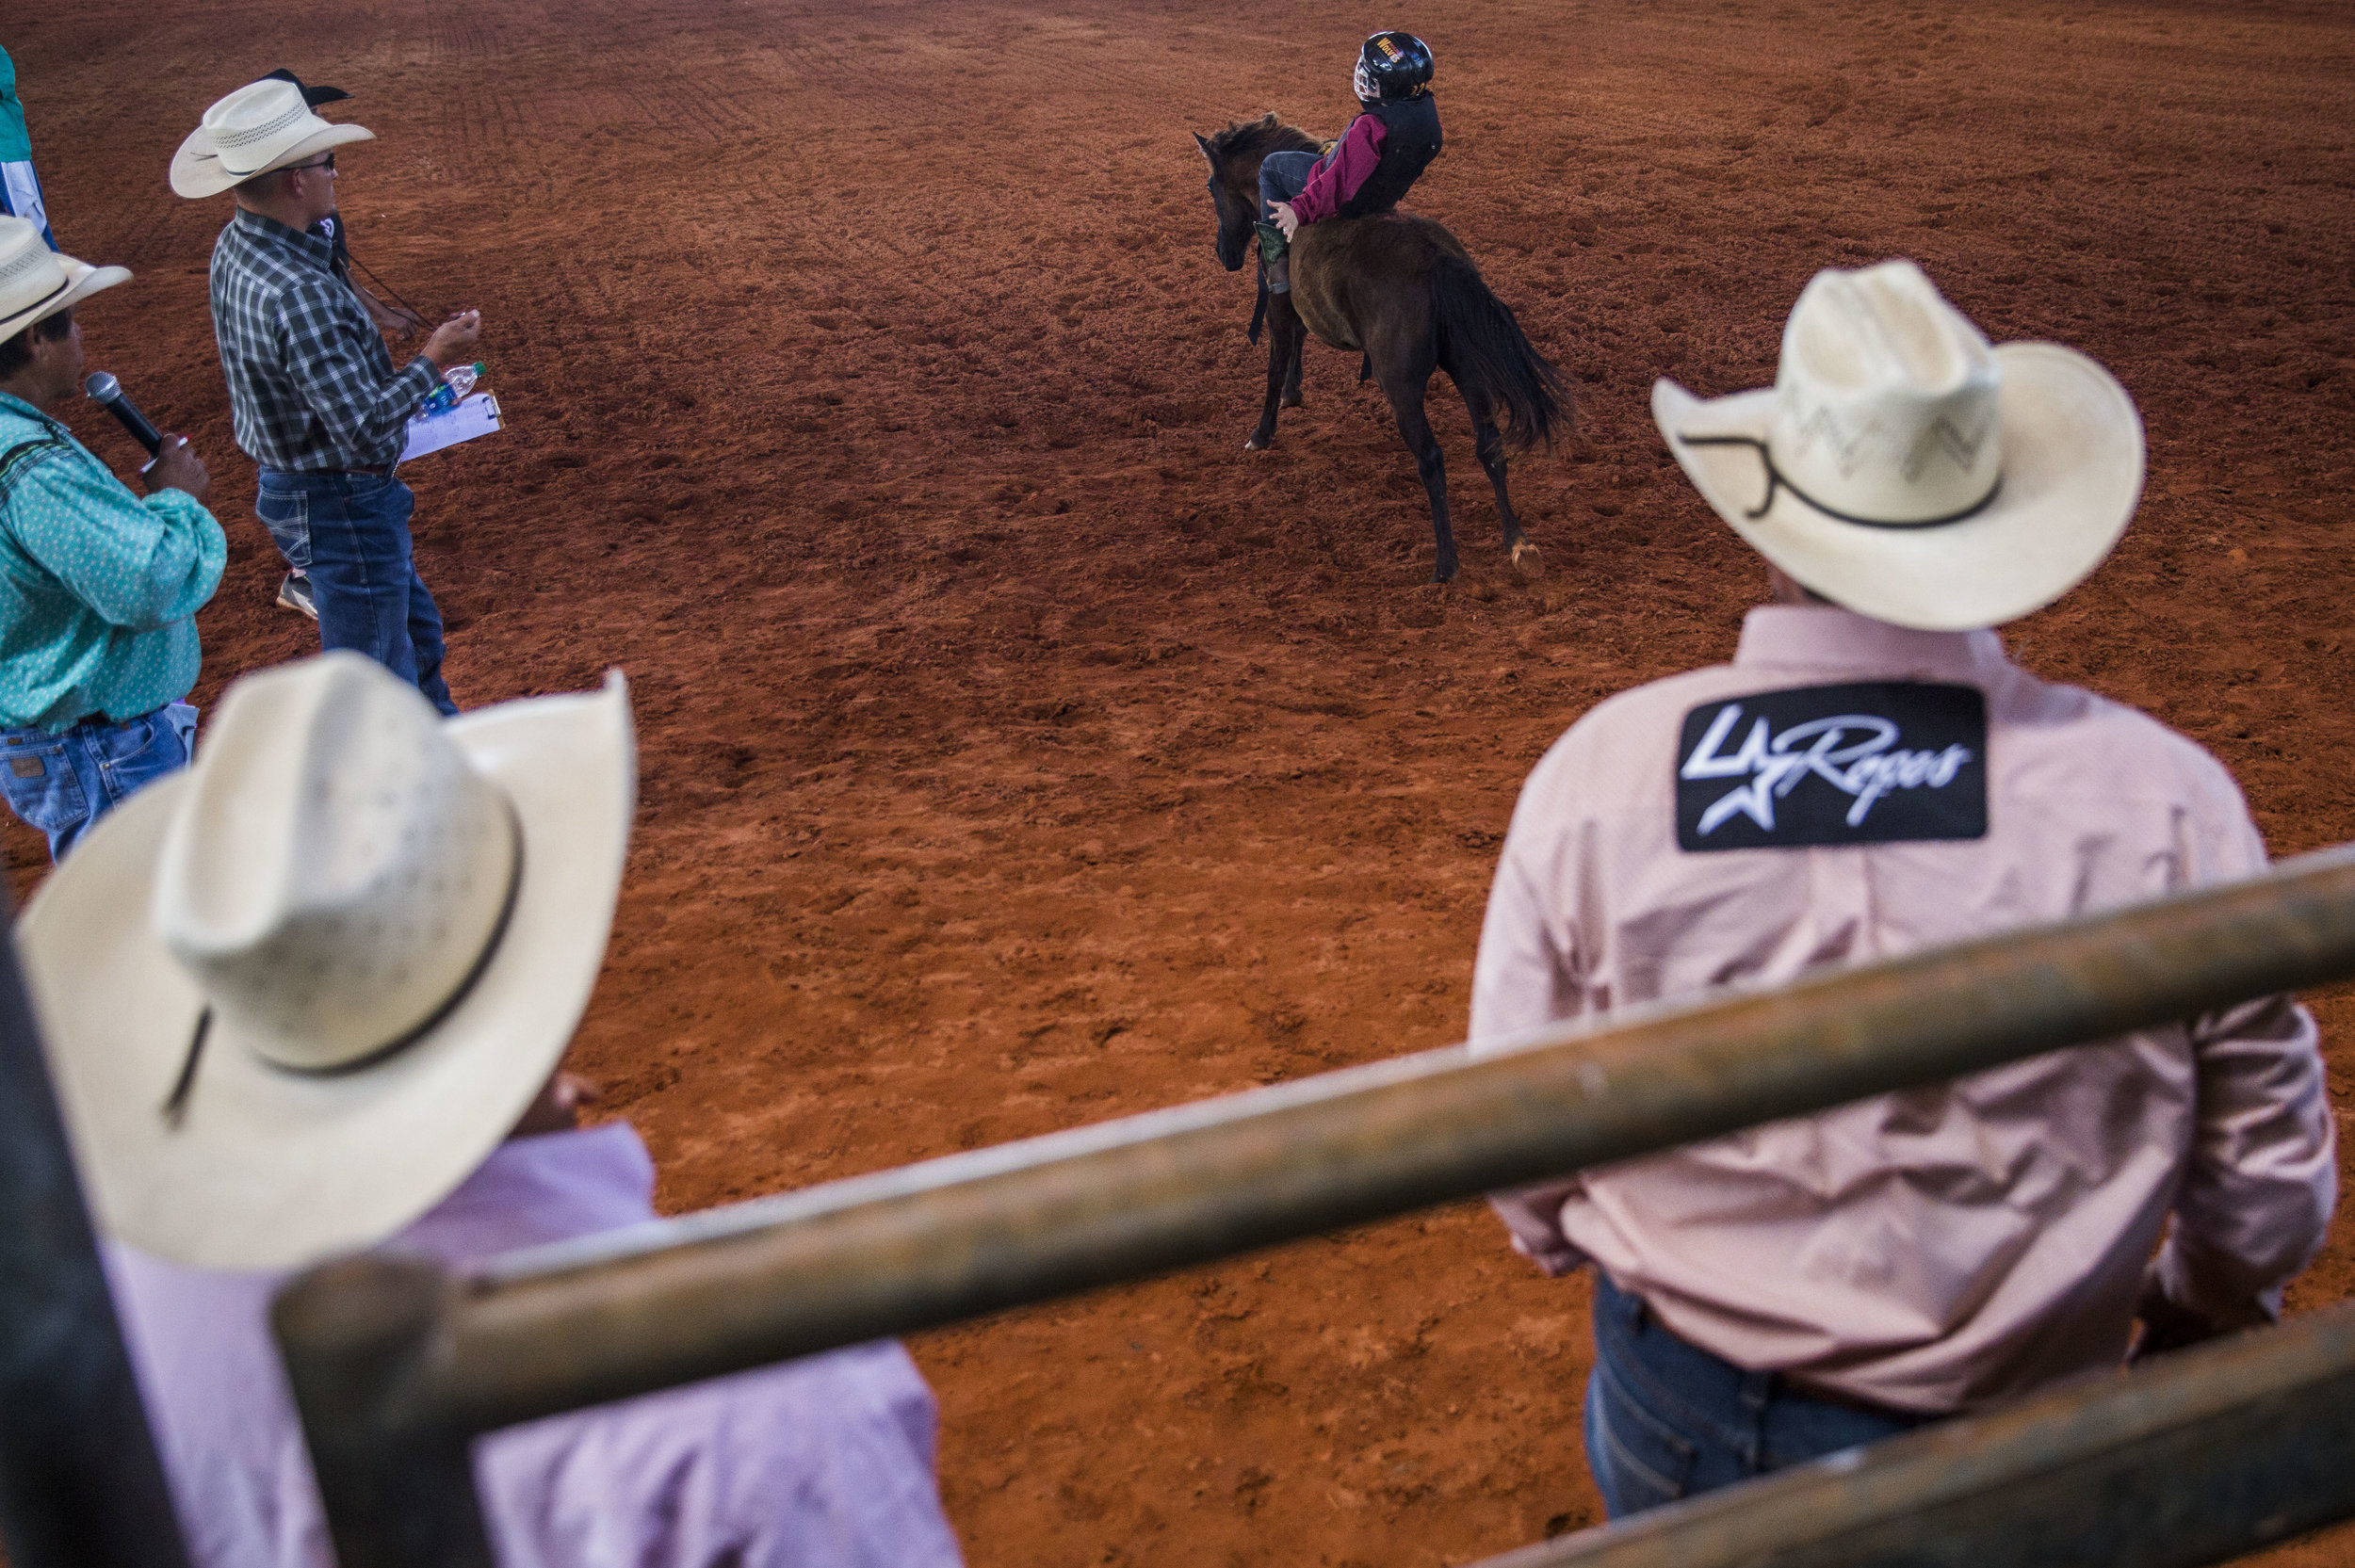 Rodeo judges and participants watch the youth pony riding during the Junior Cypress Memorial Rodeo at the Junior Cypress Rodeo Arena in Clewiston, Fla. on Saturday, March 17, 2018.